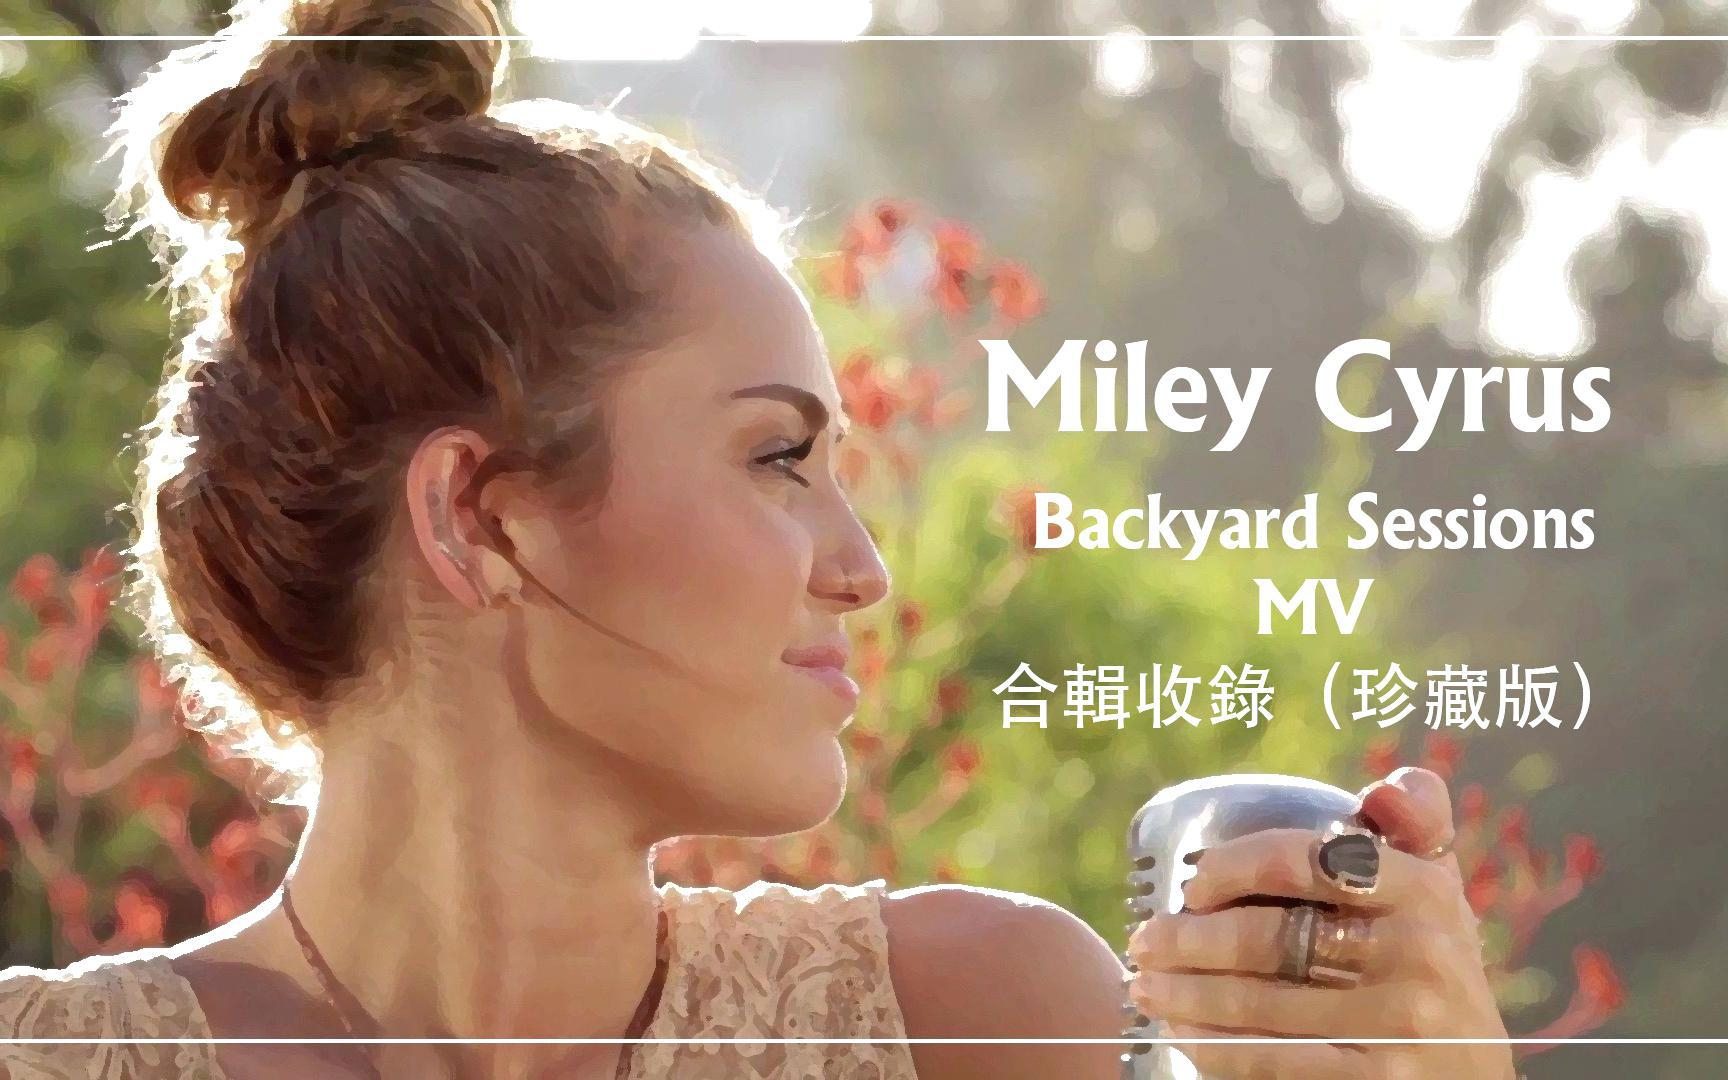 Modular The Backyard Sessions - Miley Cyrus The Backyard Sessions Wiki intended for Best of The Backyard Sessions